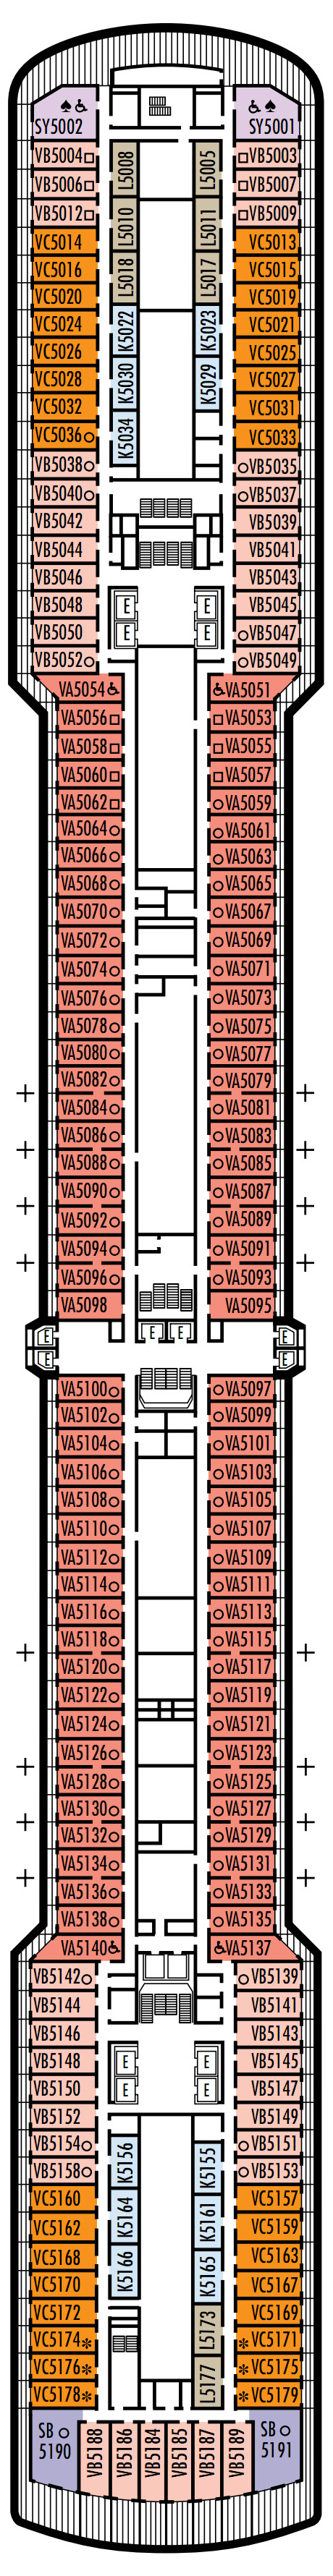 Westerdam Deck 5 - Verandah Deck layout